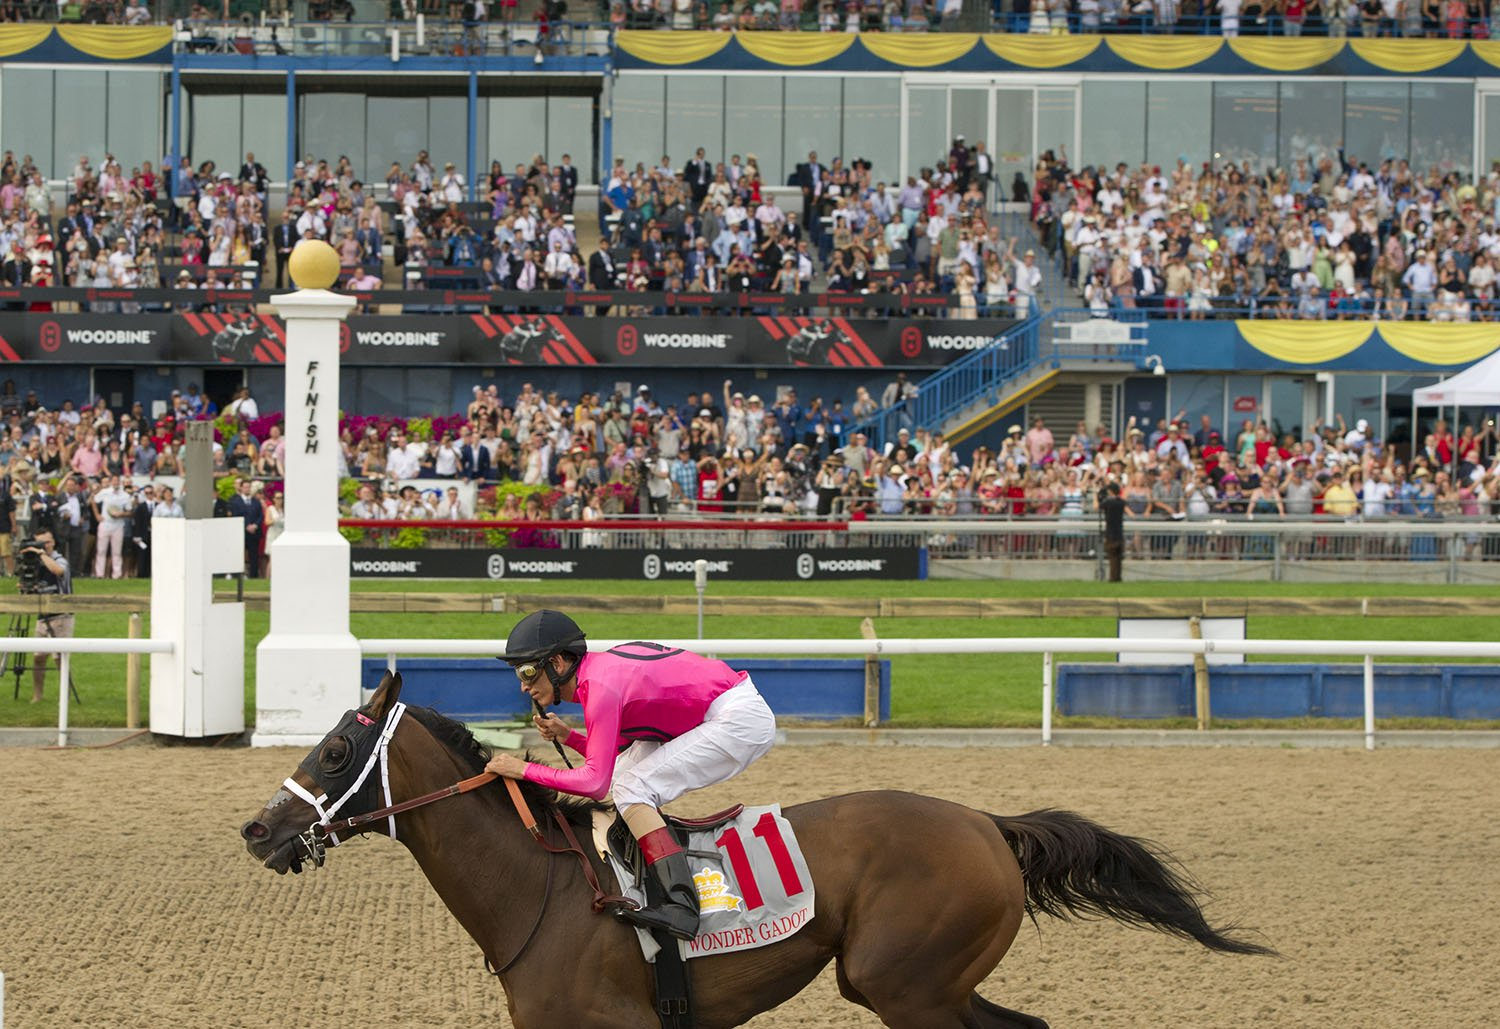 Tickets On Sale Now For The 2019 Queen S Plate Racing Festival Woodbine Racetrack